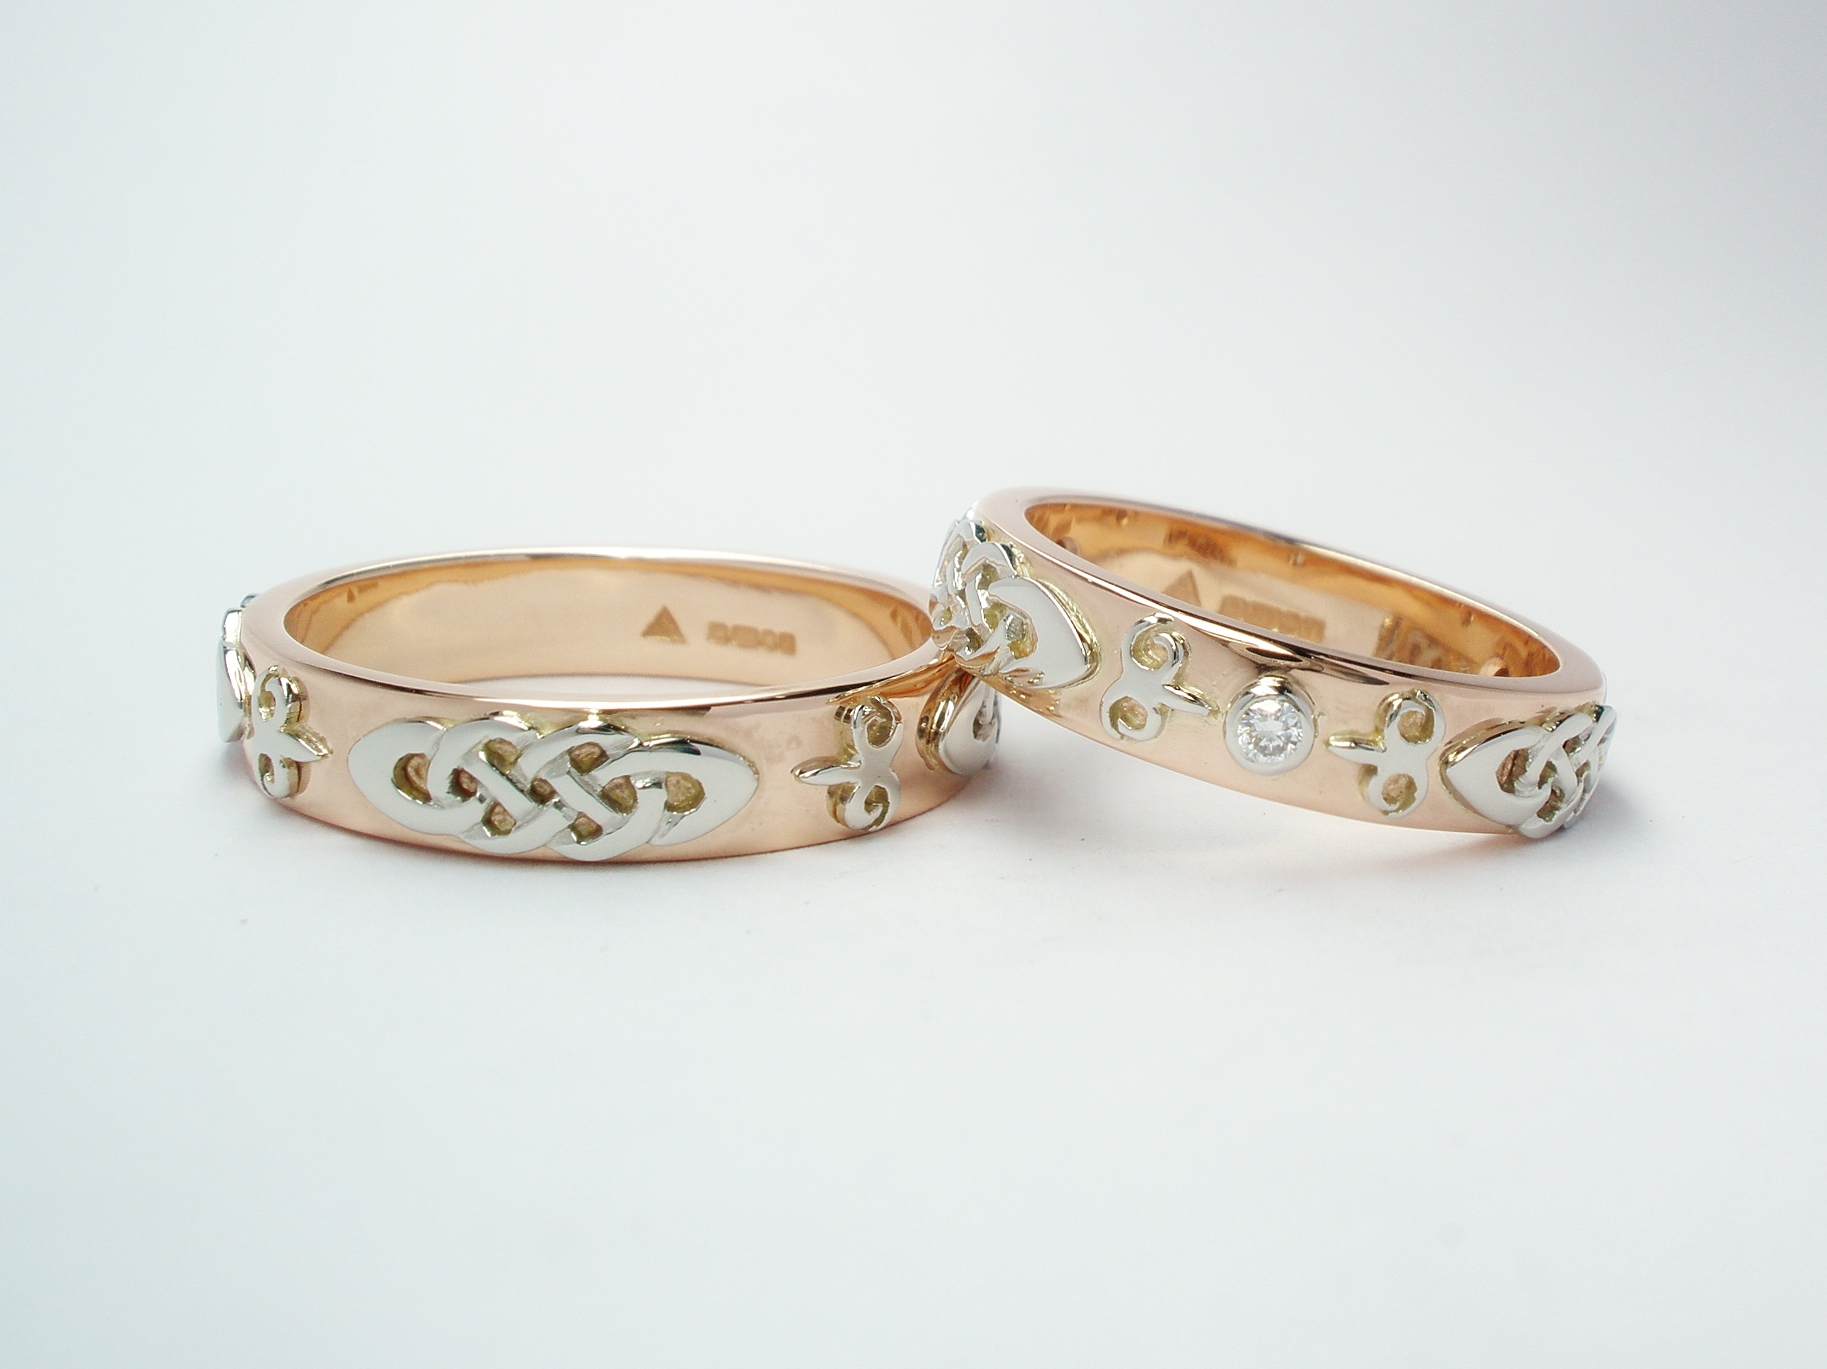 The matching pair or His & Her red gold wedding rings with platinum Celtic & Kazakh style motif overlays.